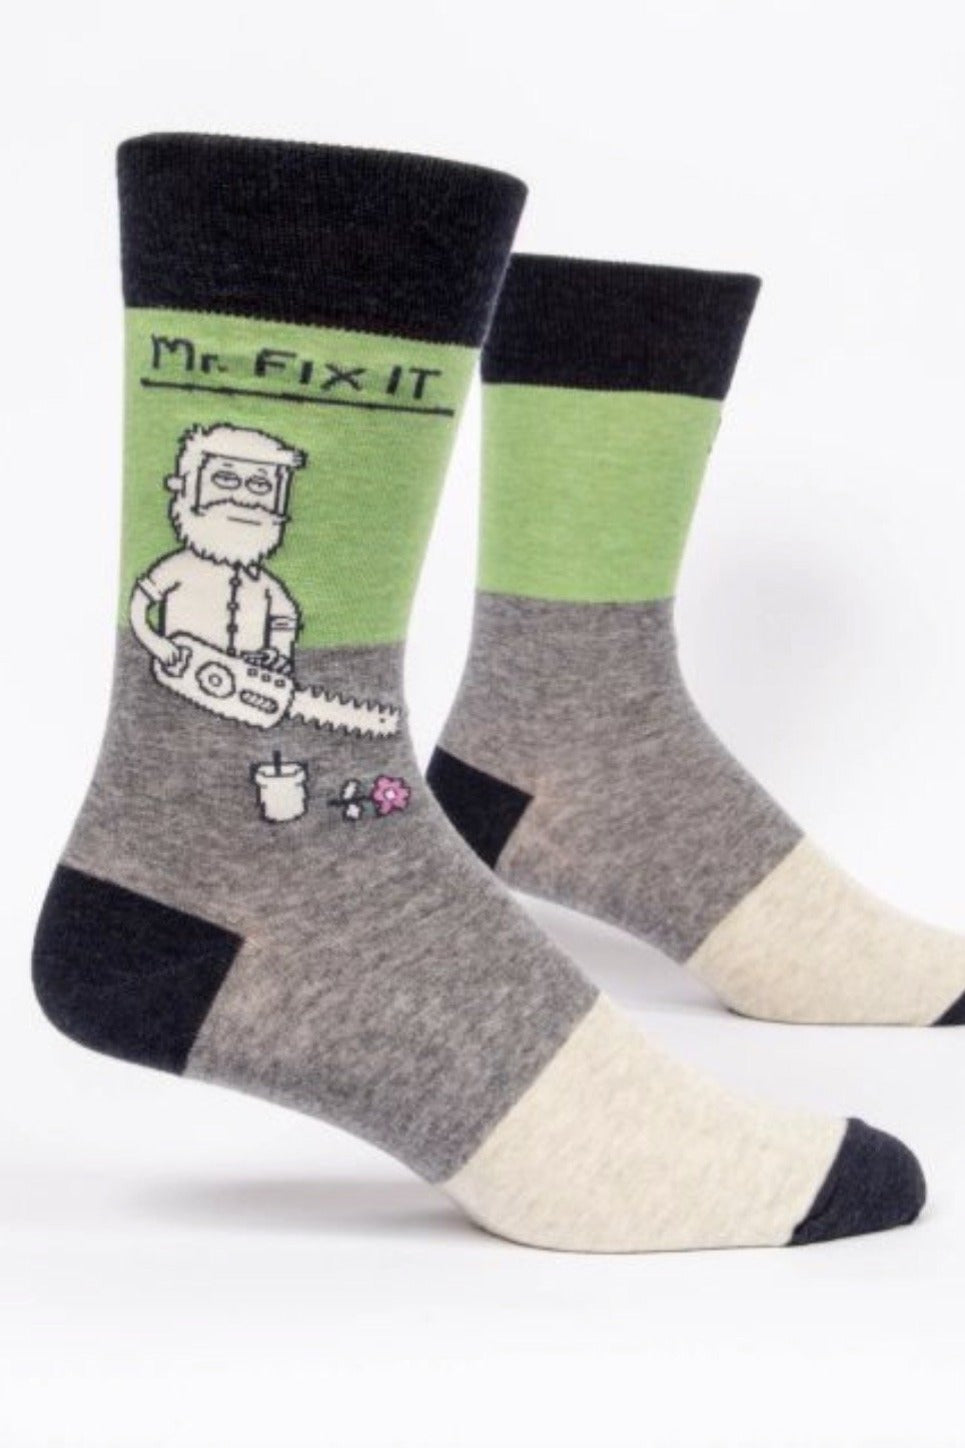 Mr. Fix It Men's Socks